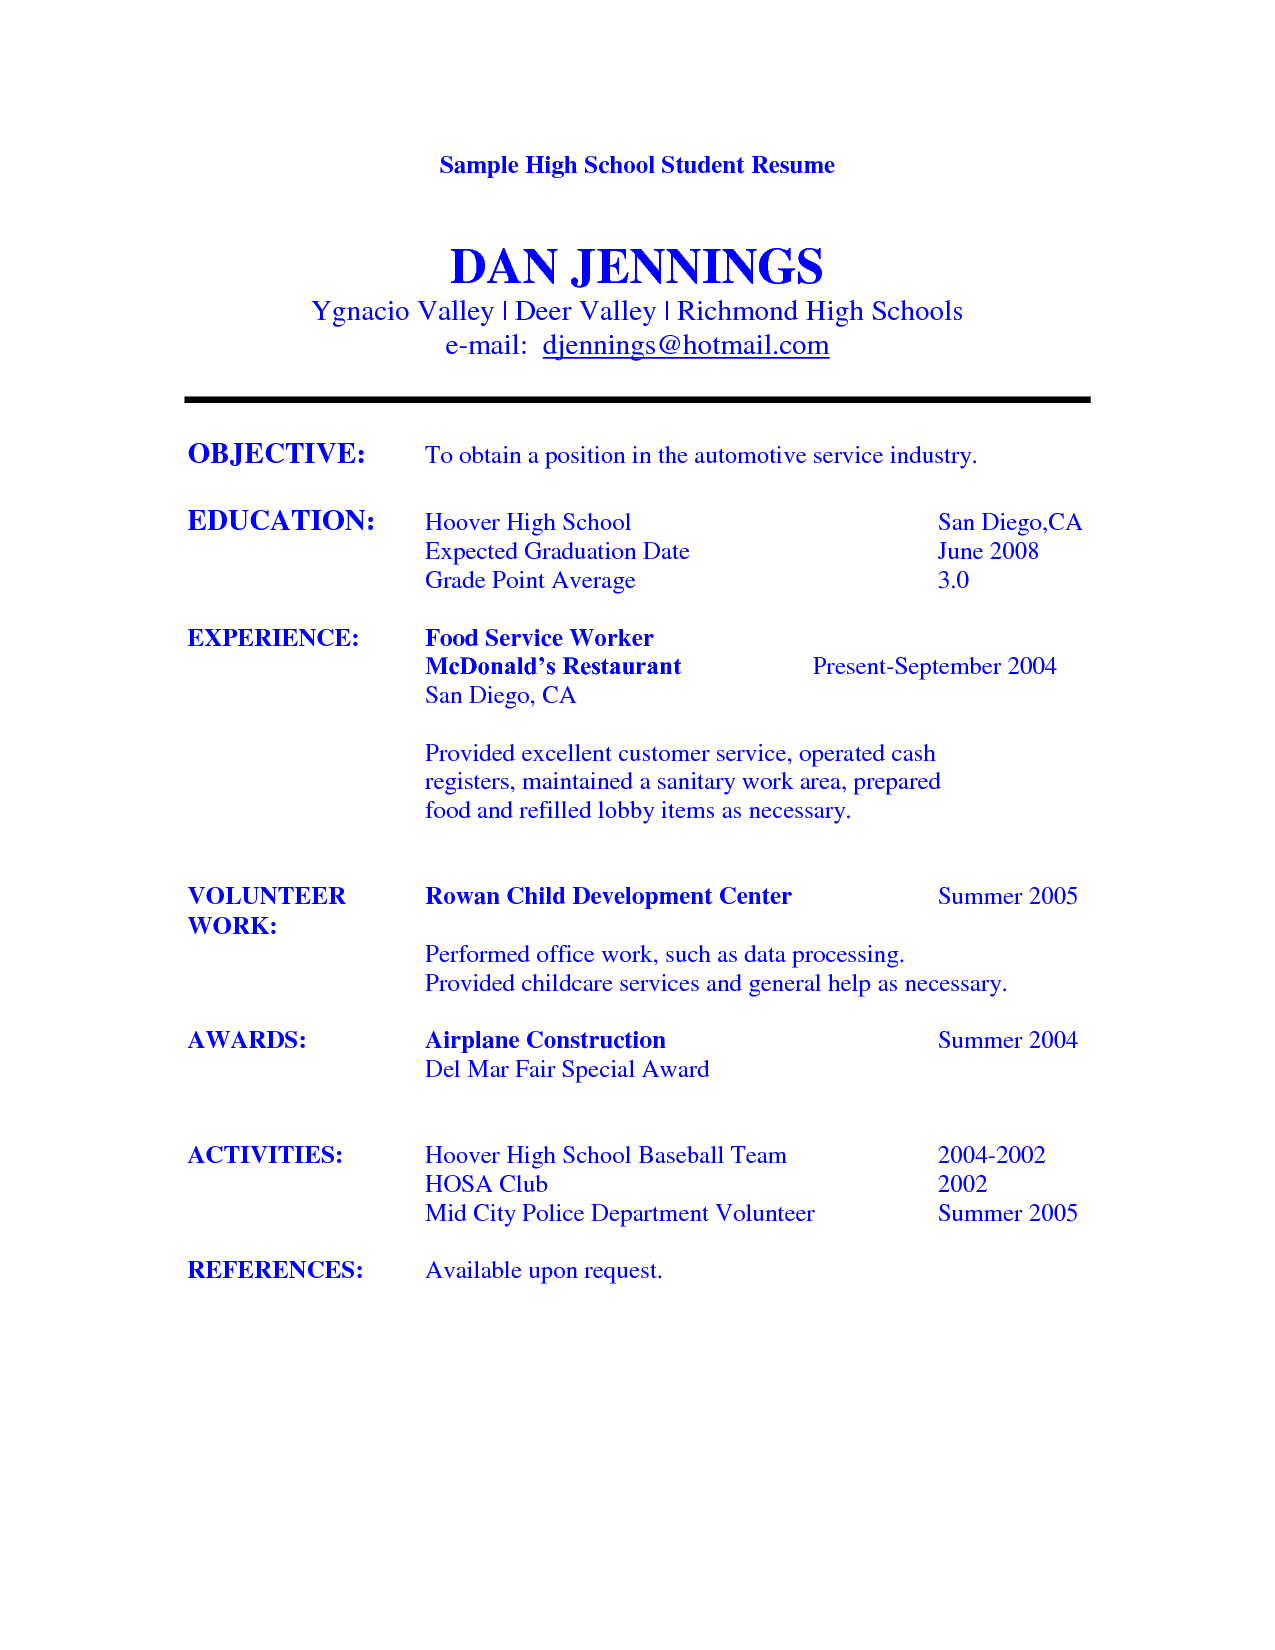 Resume Template High School Student Resume Example For High School Student Sample Resumes  Httpwww